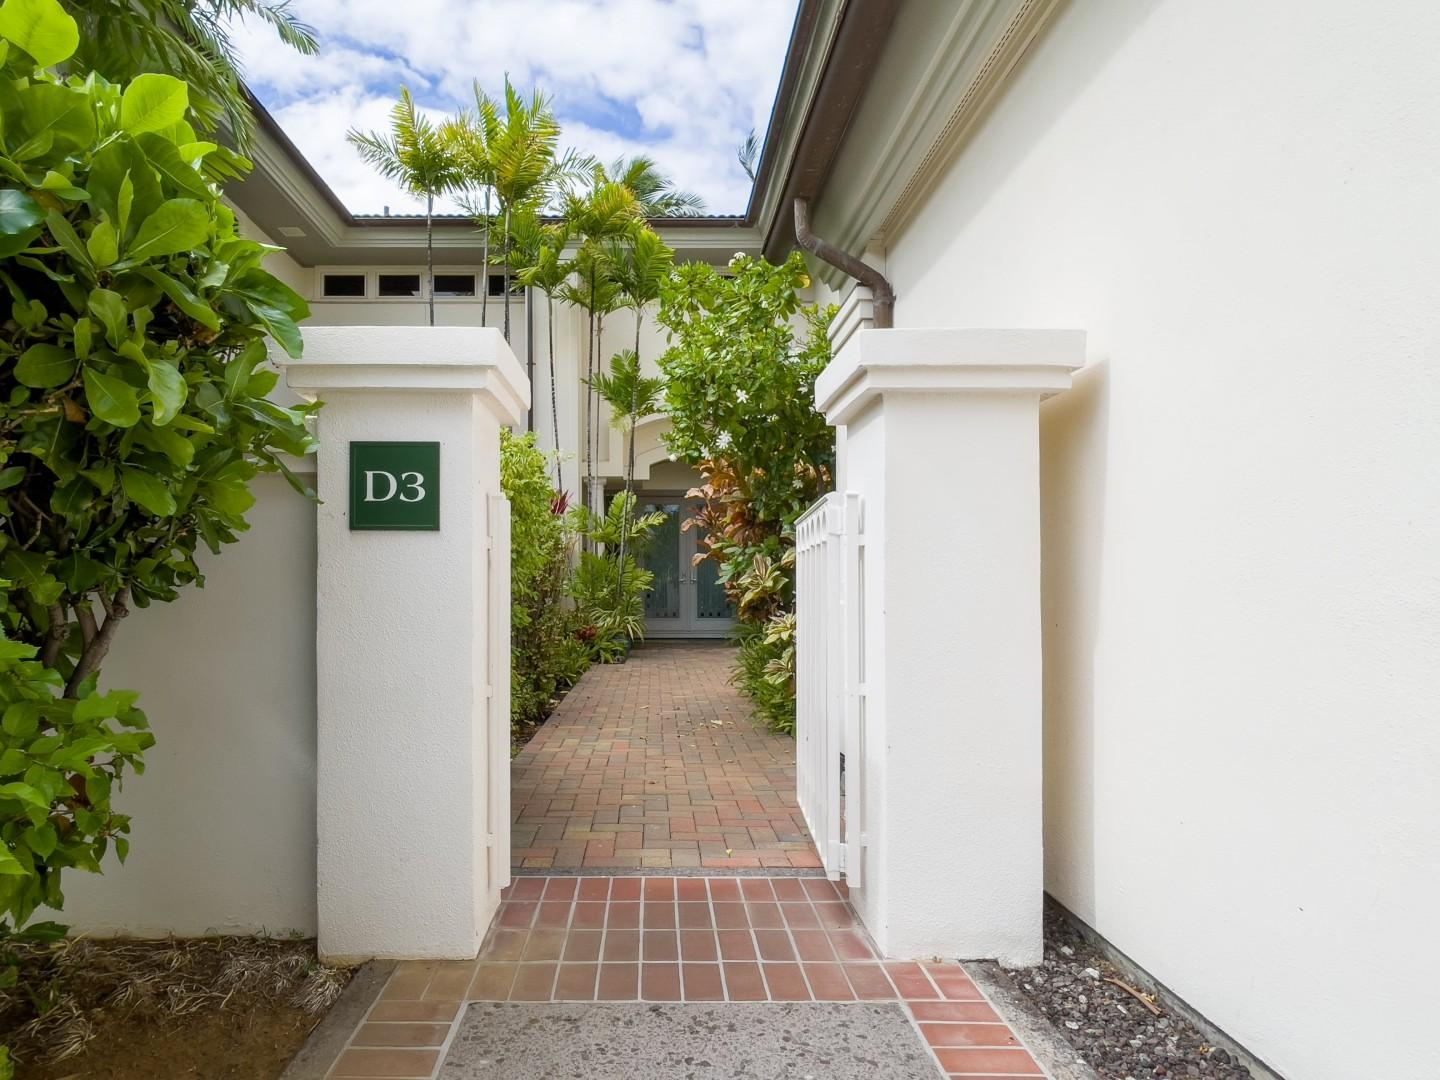 Front Entrance via Gated Courtyard